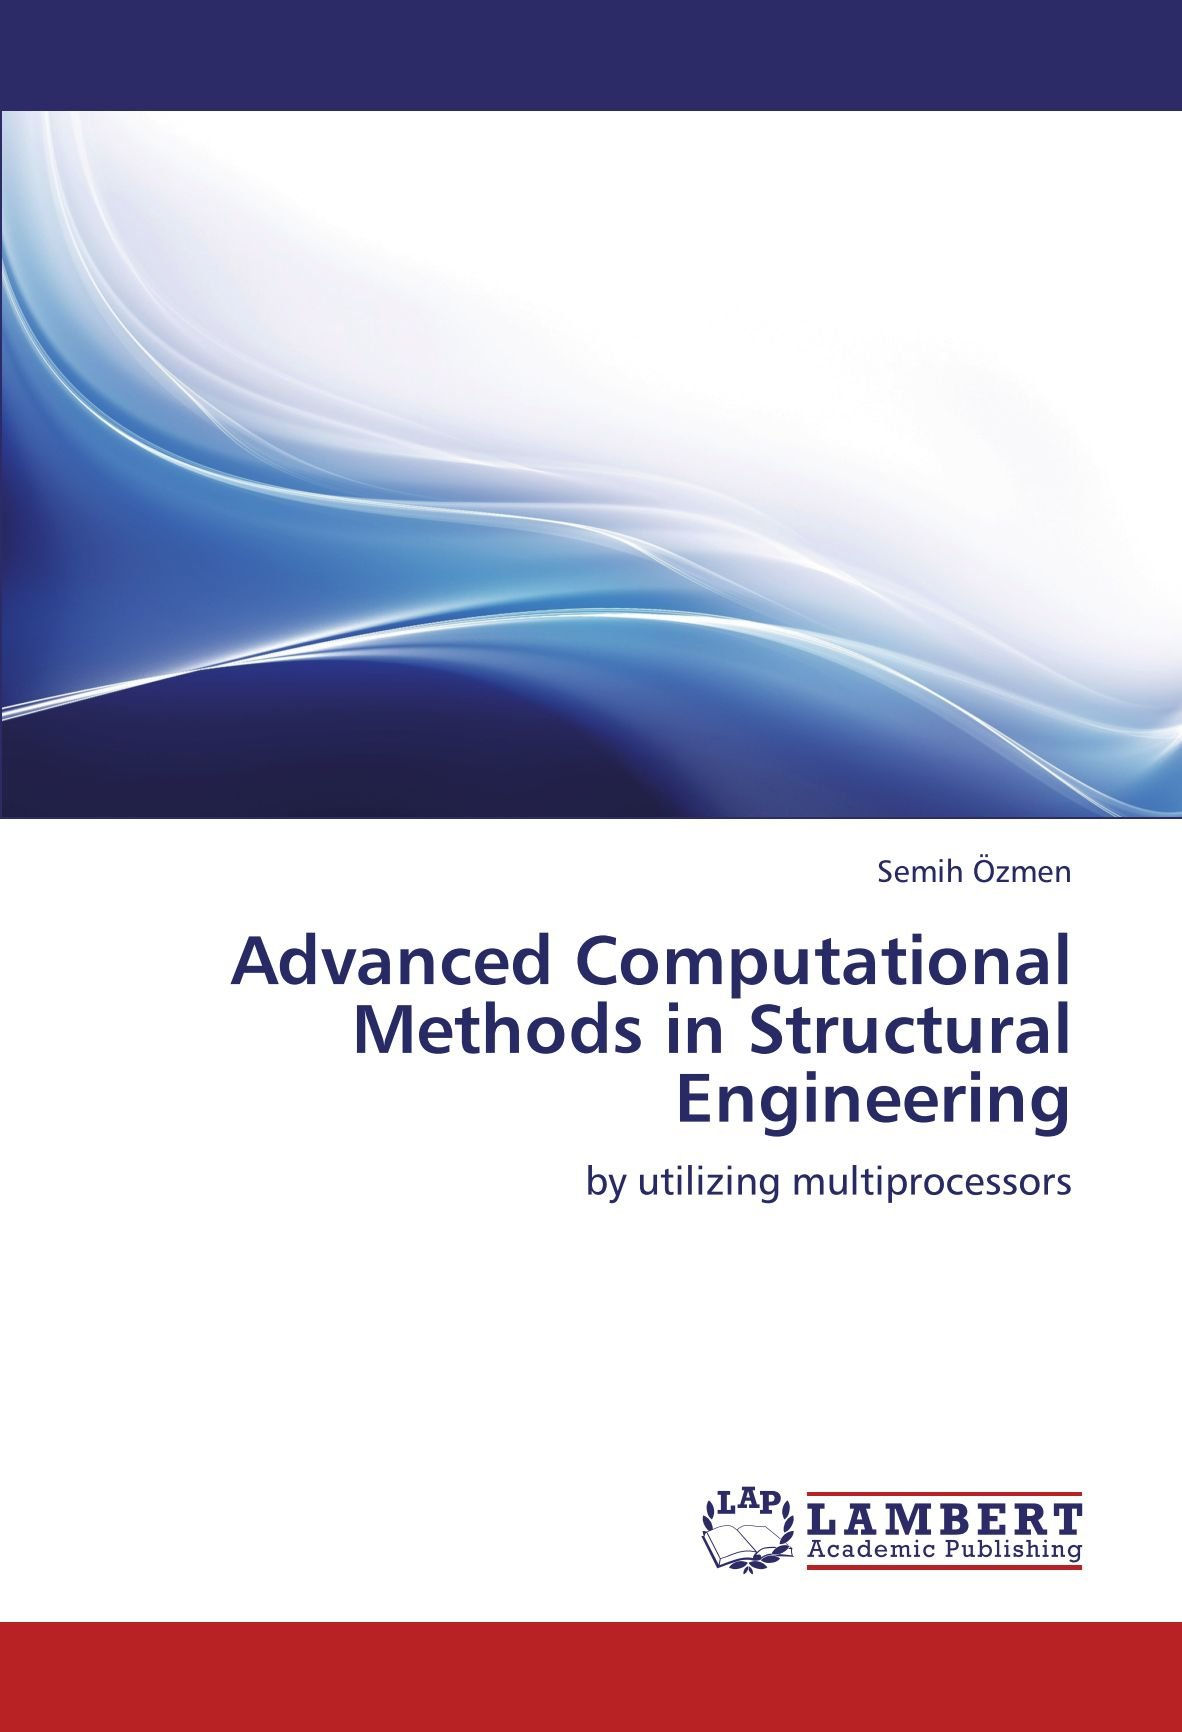 Low cost CPU–GPGPU parallel computing in real-world structural engineering